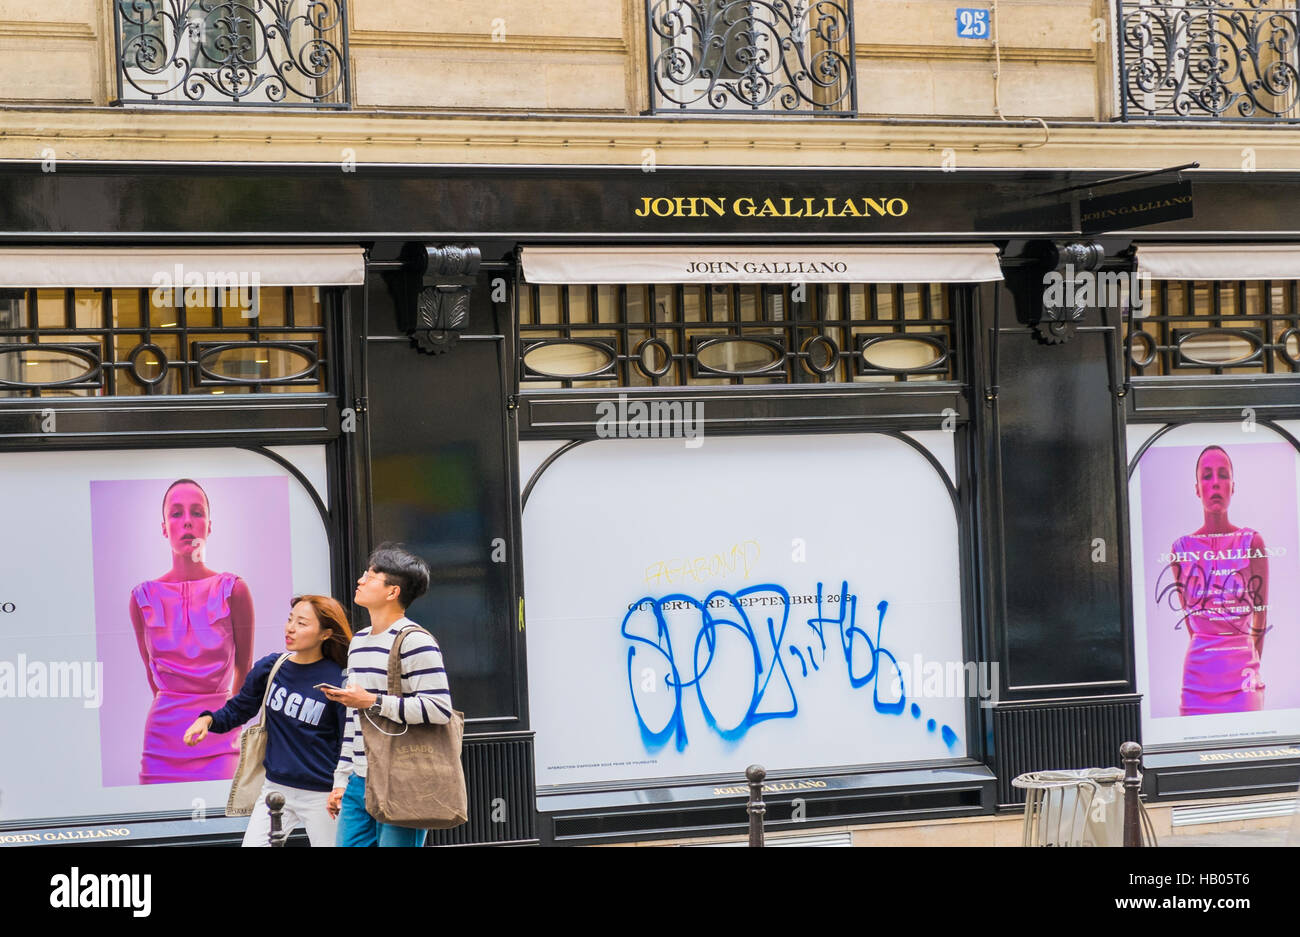 street scene in front of john galliano flagship store, marais district - Stock Image